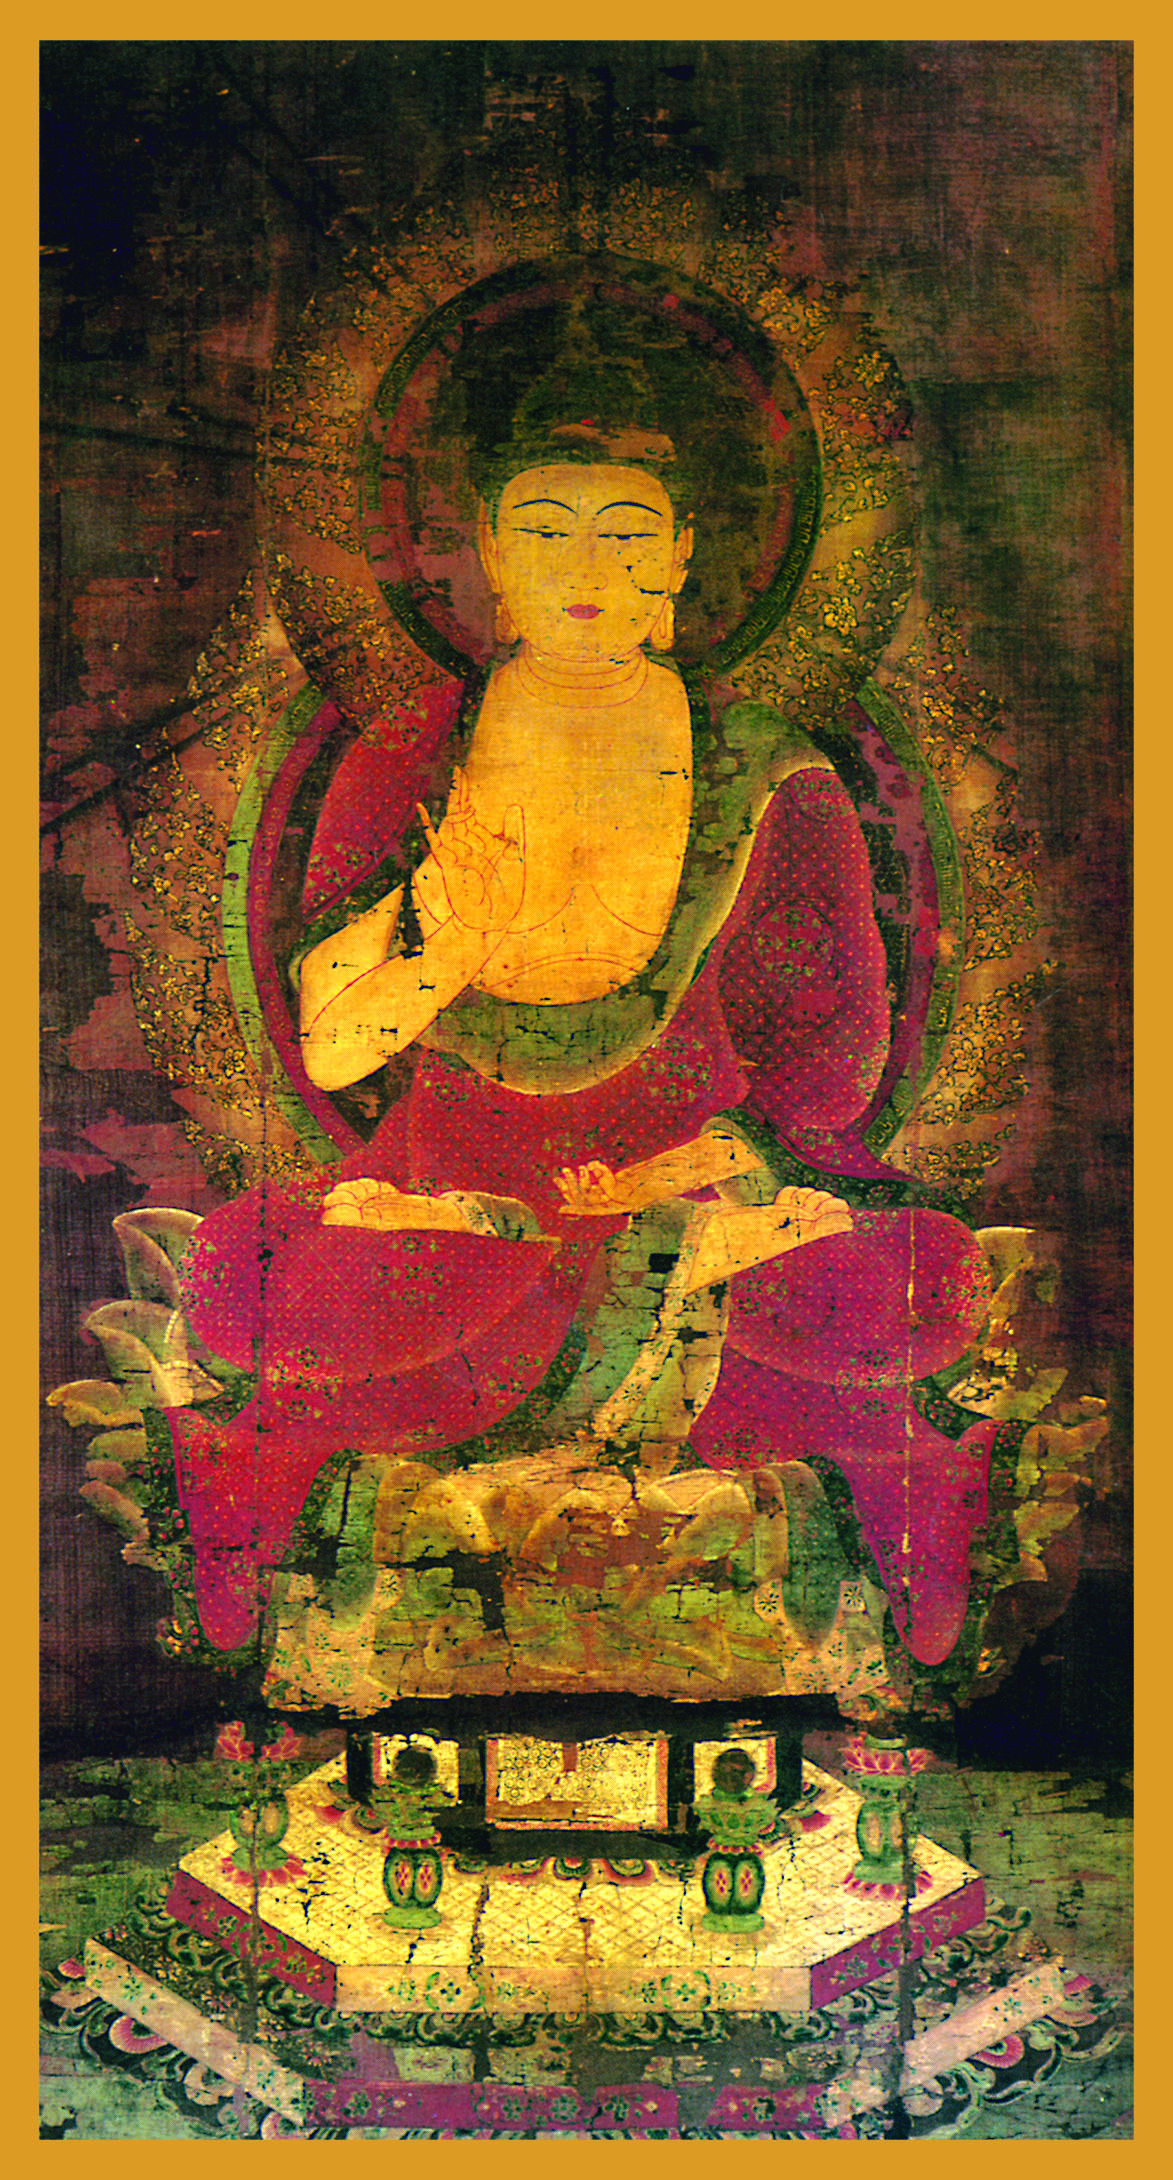 BUD-AM - Amitabha BuddhaBuddha of Boundless LightBuddha, in the sixth century BC, at the age of 35, invoked the earth as his witness when he attained Enlightenment. This is indicated by the fingers of his right hand in the